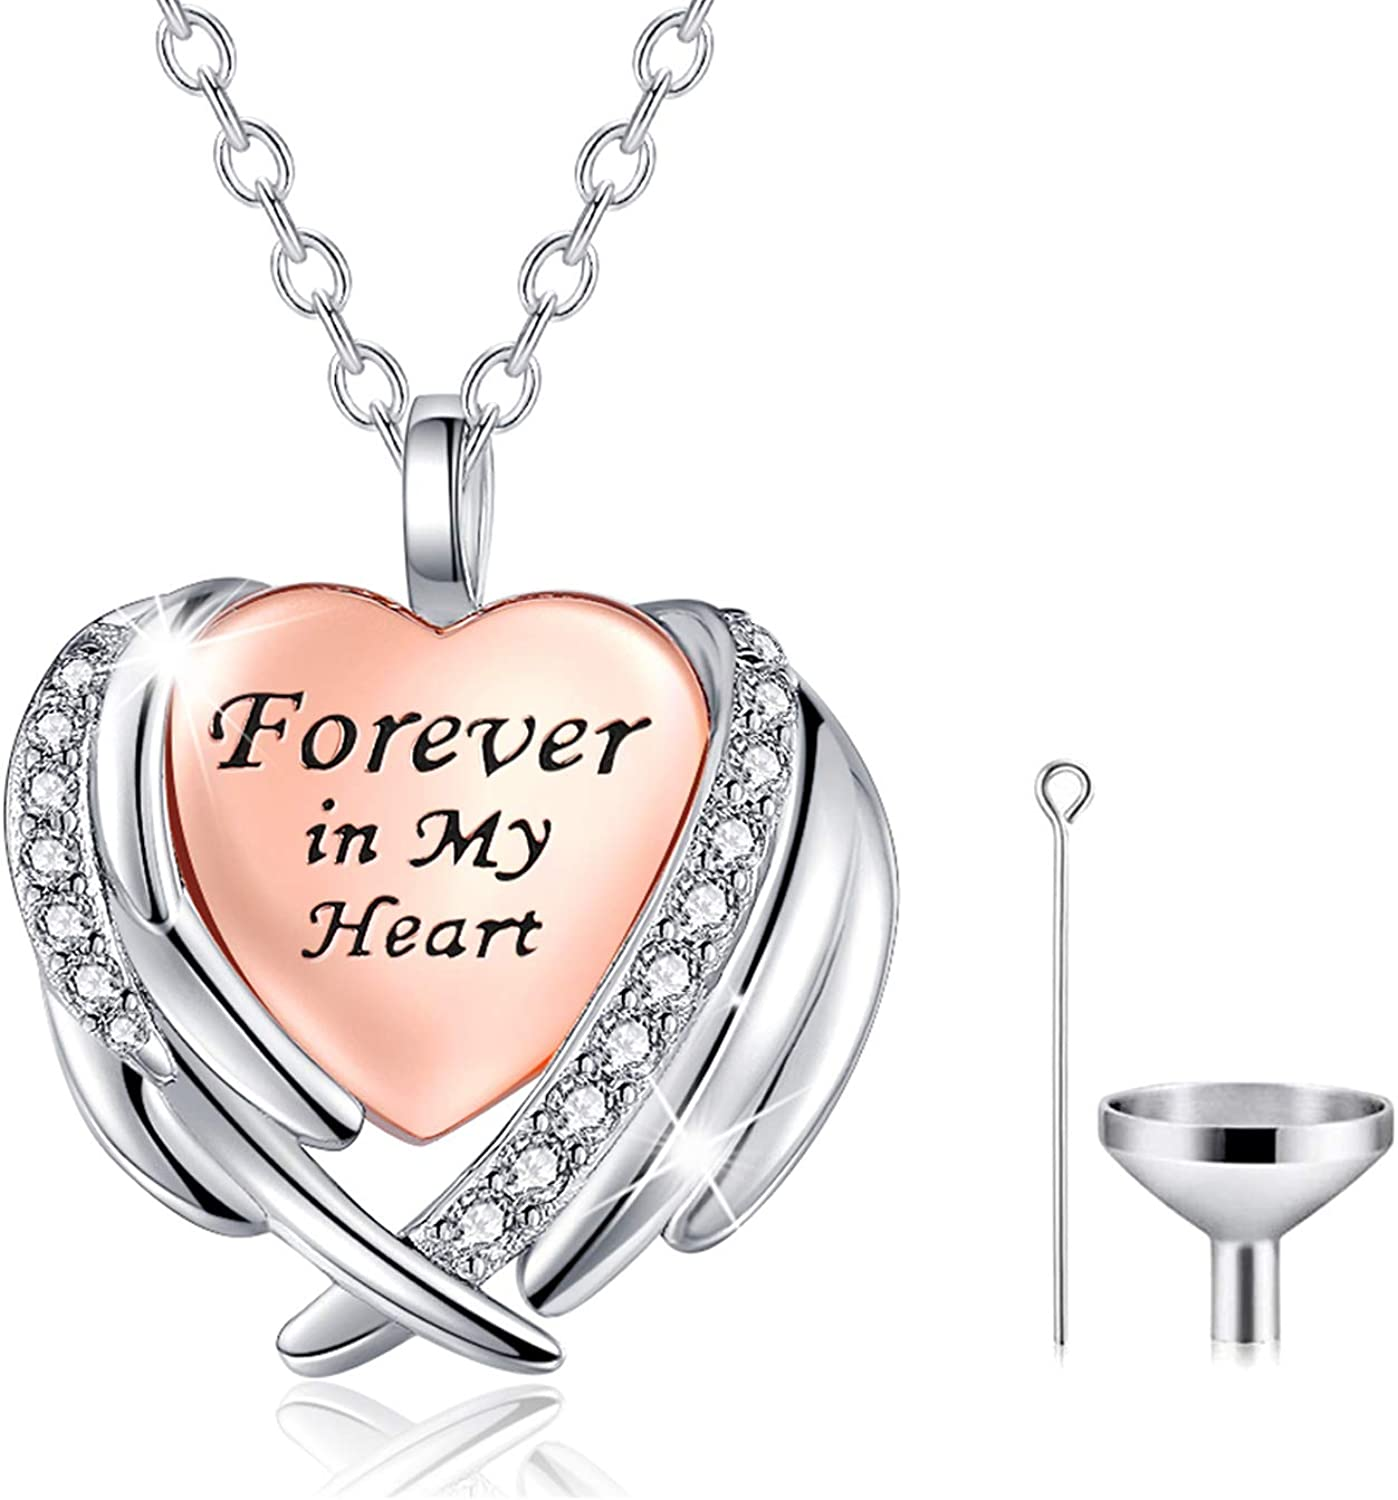 Urn Necklaces for Ashes Cremation Angel Jewelry Ranking TOP9 Sterling Silver Super intense SALE